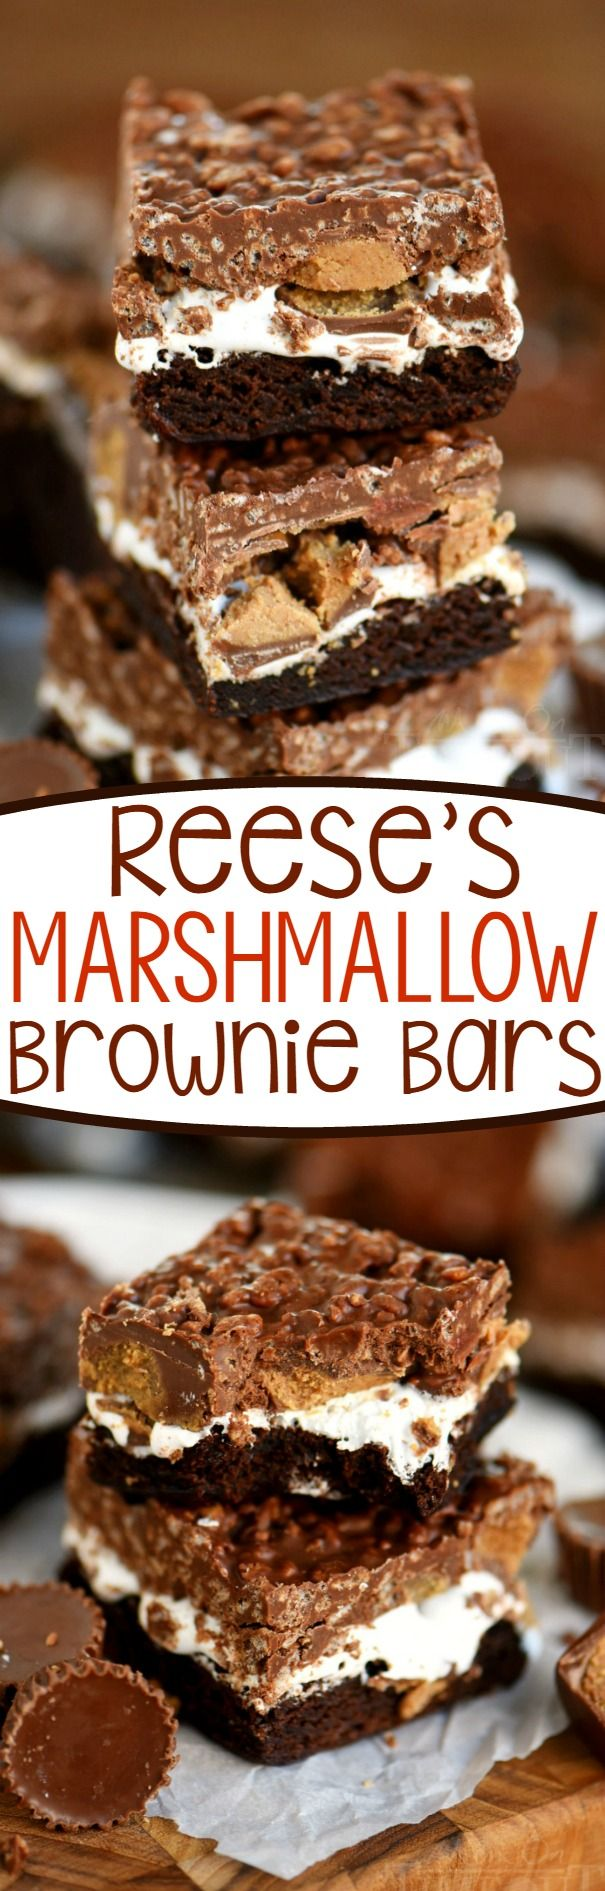 Reese's Marshmallow Brownie Bars are the perfect dessert for a crowd! This easy dessert recipe is impossible to resist - full of sweet chocolate and yummy peanut butter...all you'll need is a glass of milk! // Mom On Timeout